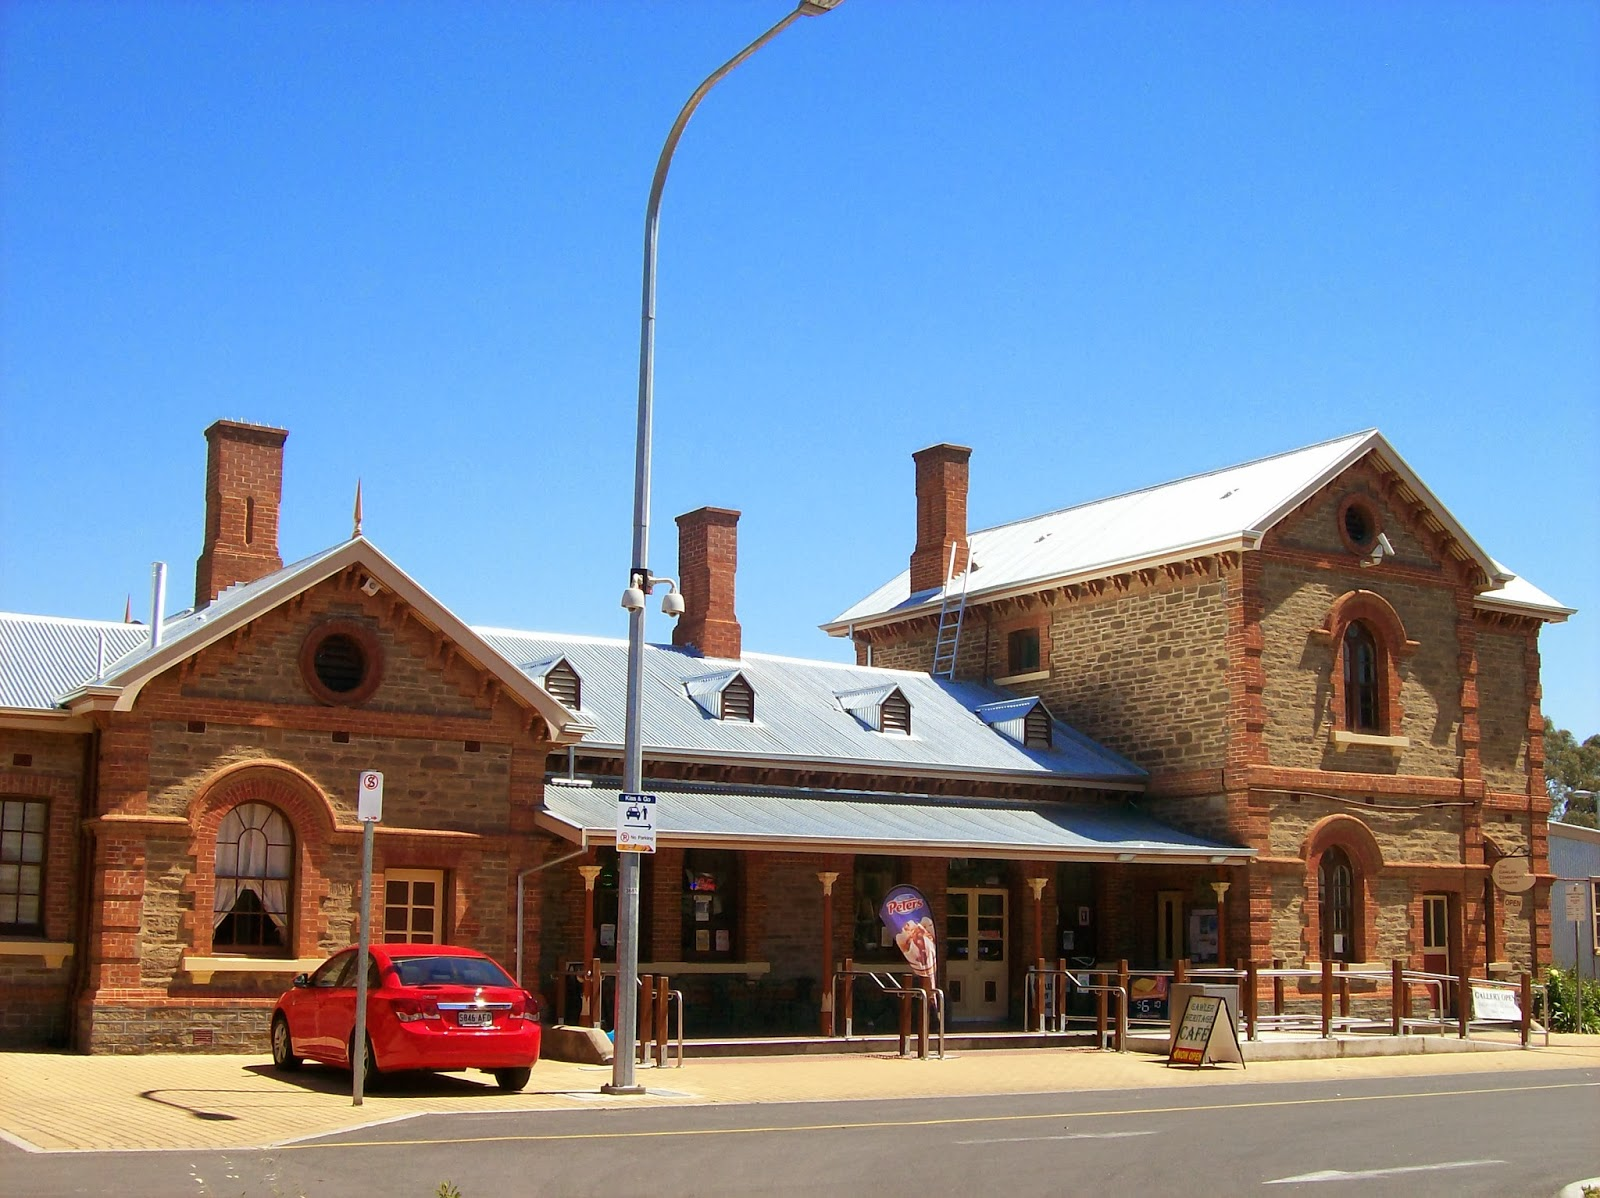 Gawler Australia  City pictures : Gawler RailwayStation in South Australia